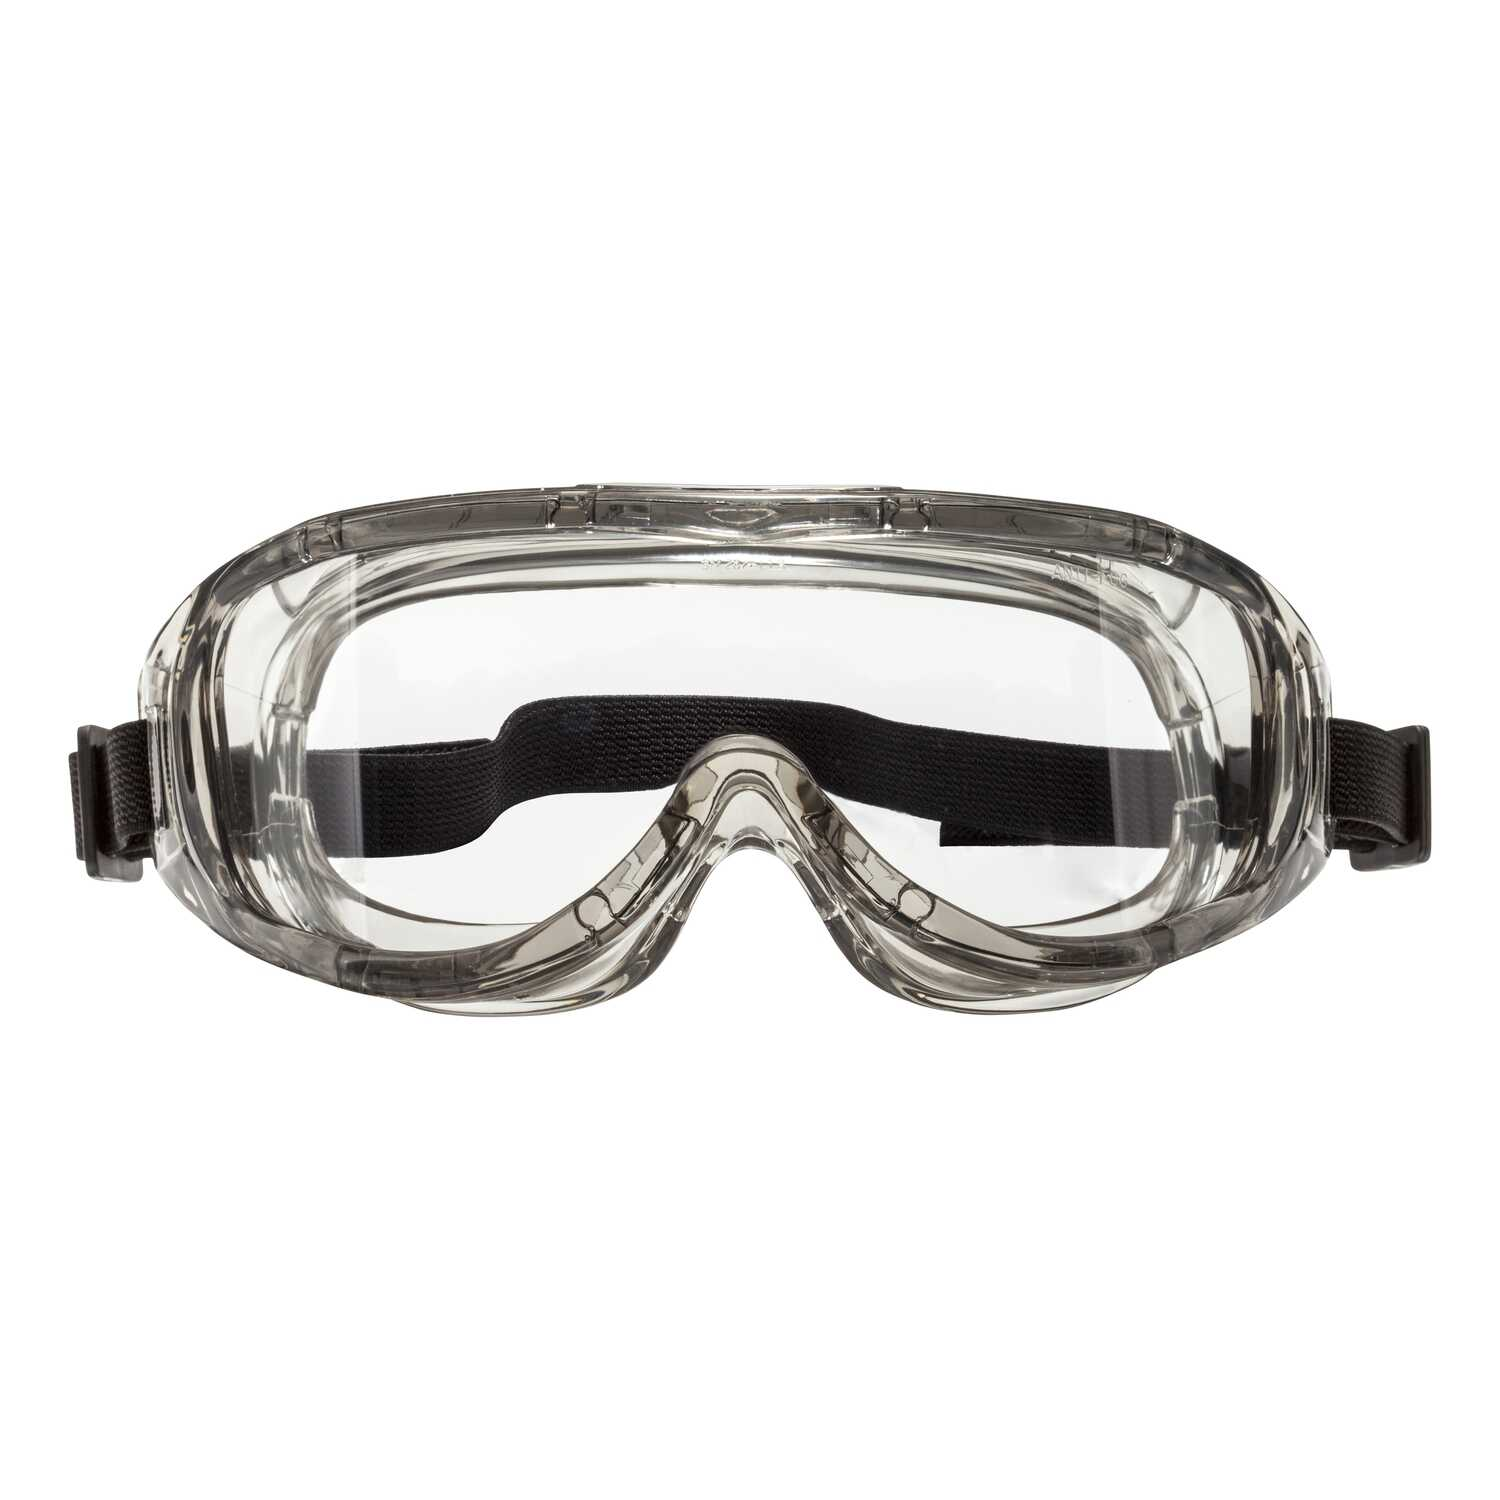 3M  Anti-Fog Safety Glasses  Clear Lens Silver Frame 1 pc.